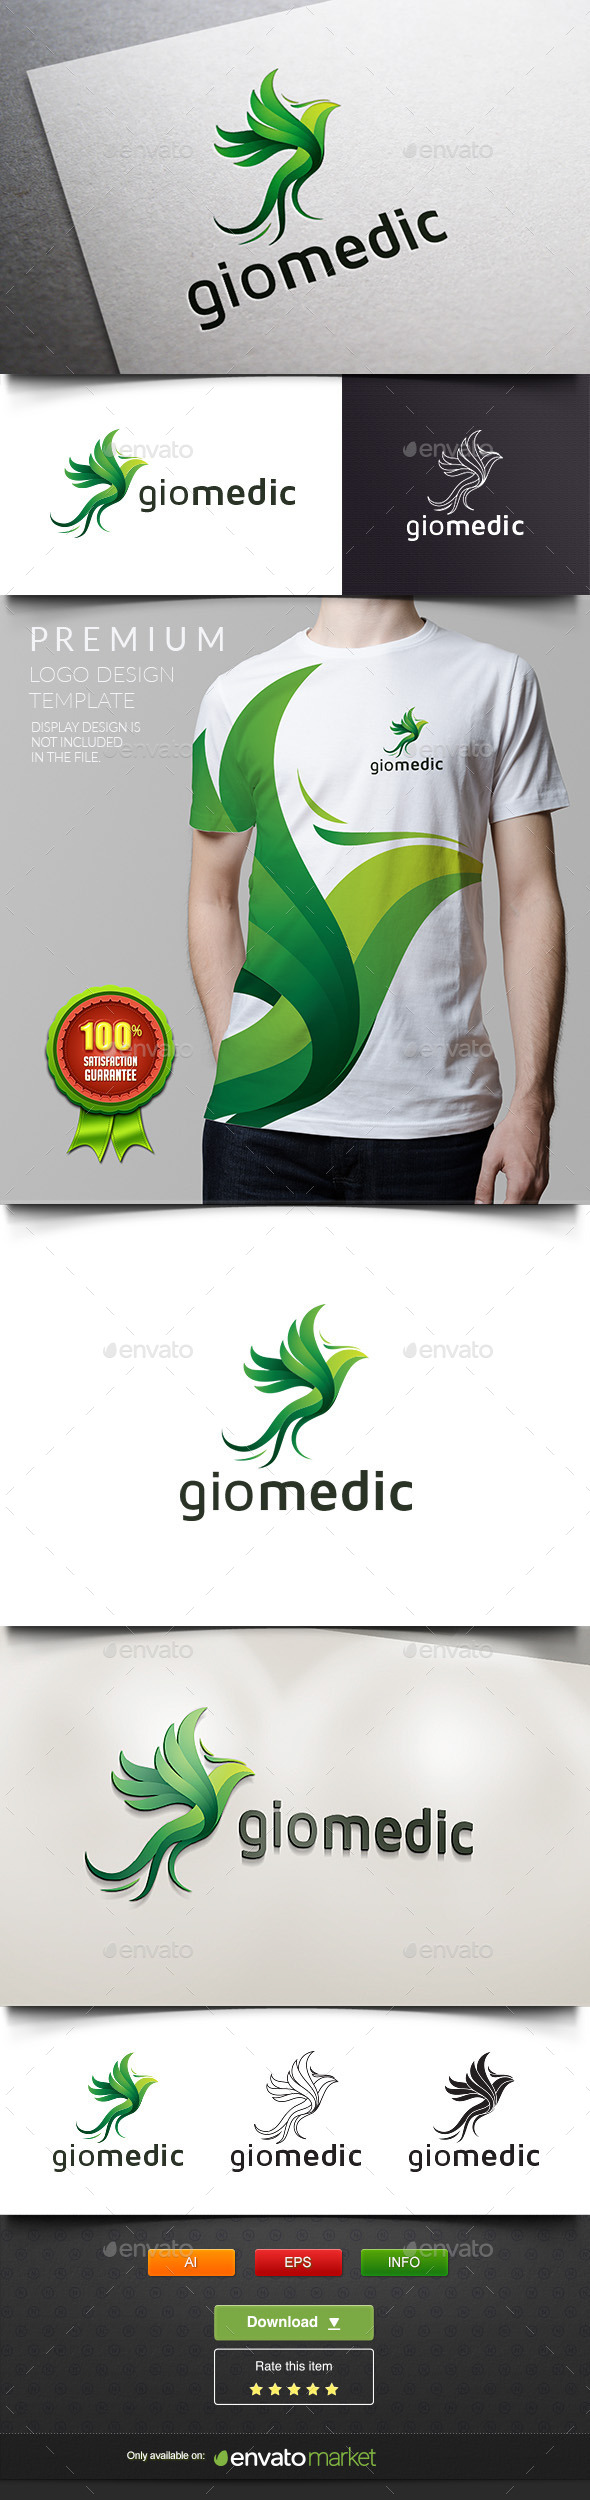 Giomedic - Green Parrot - Animals Logo Templates